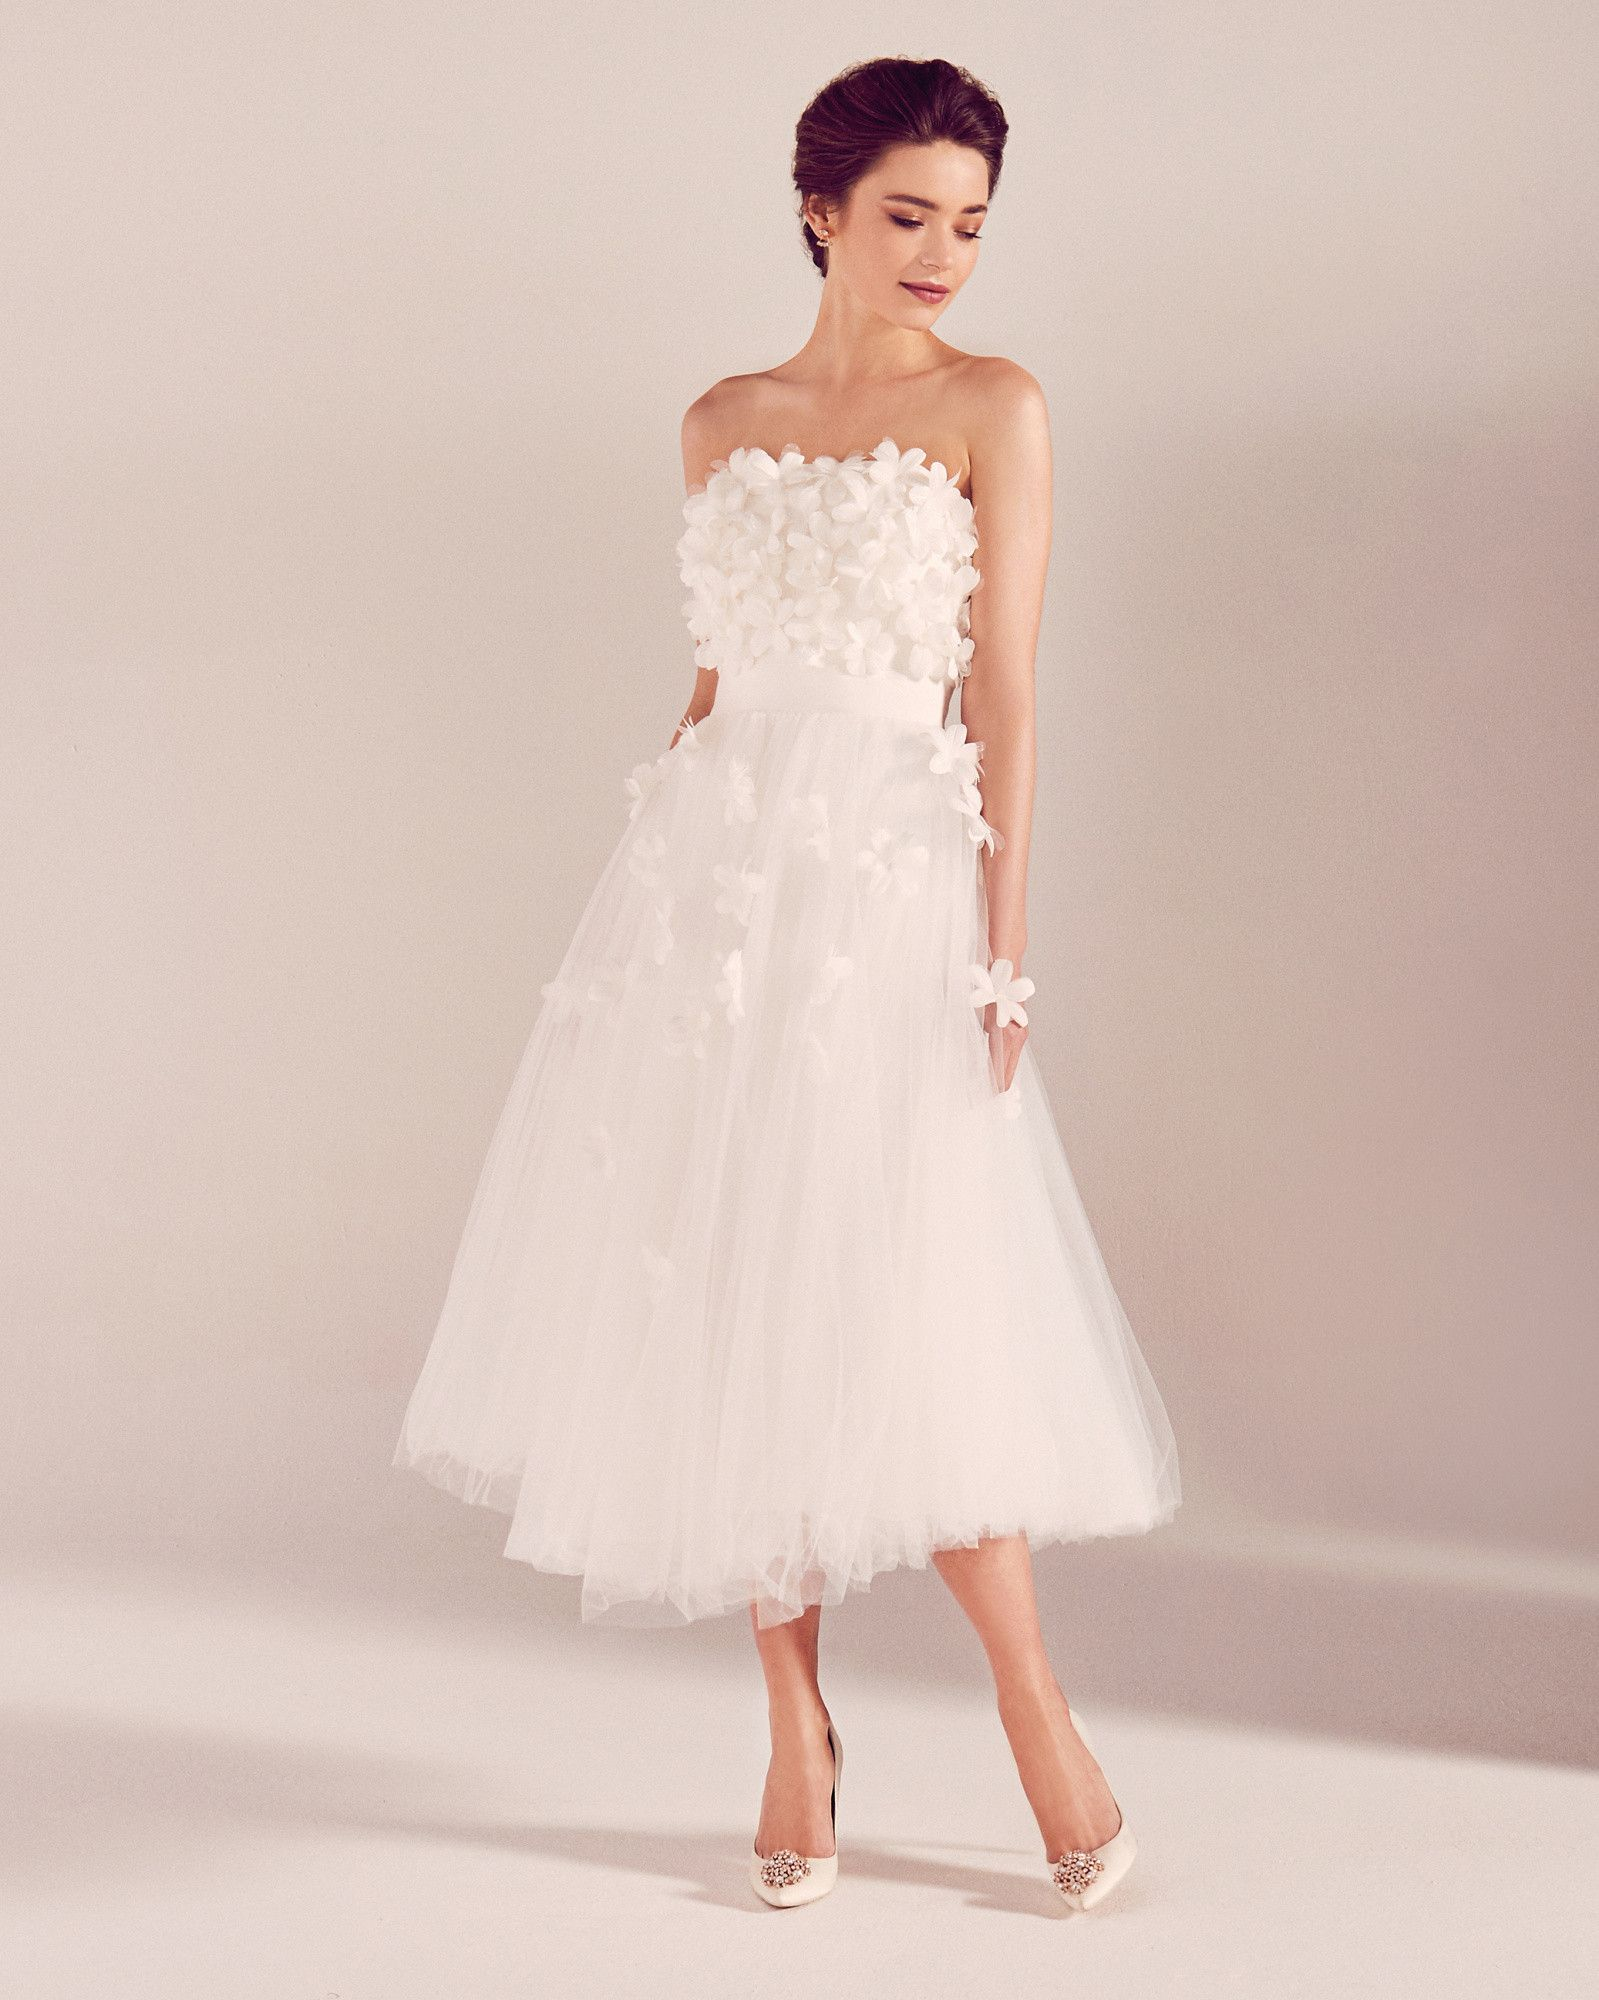 Floral Applique Tulle Bridal Dress White Wedding Dresses Ted